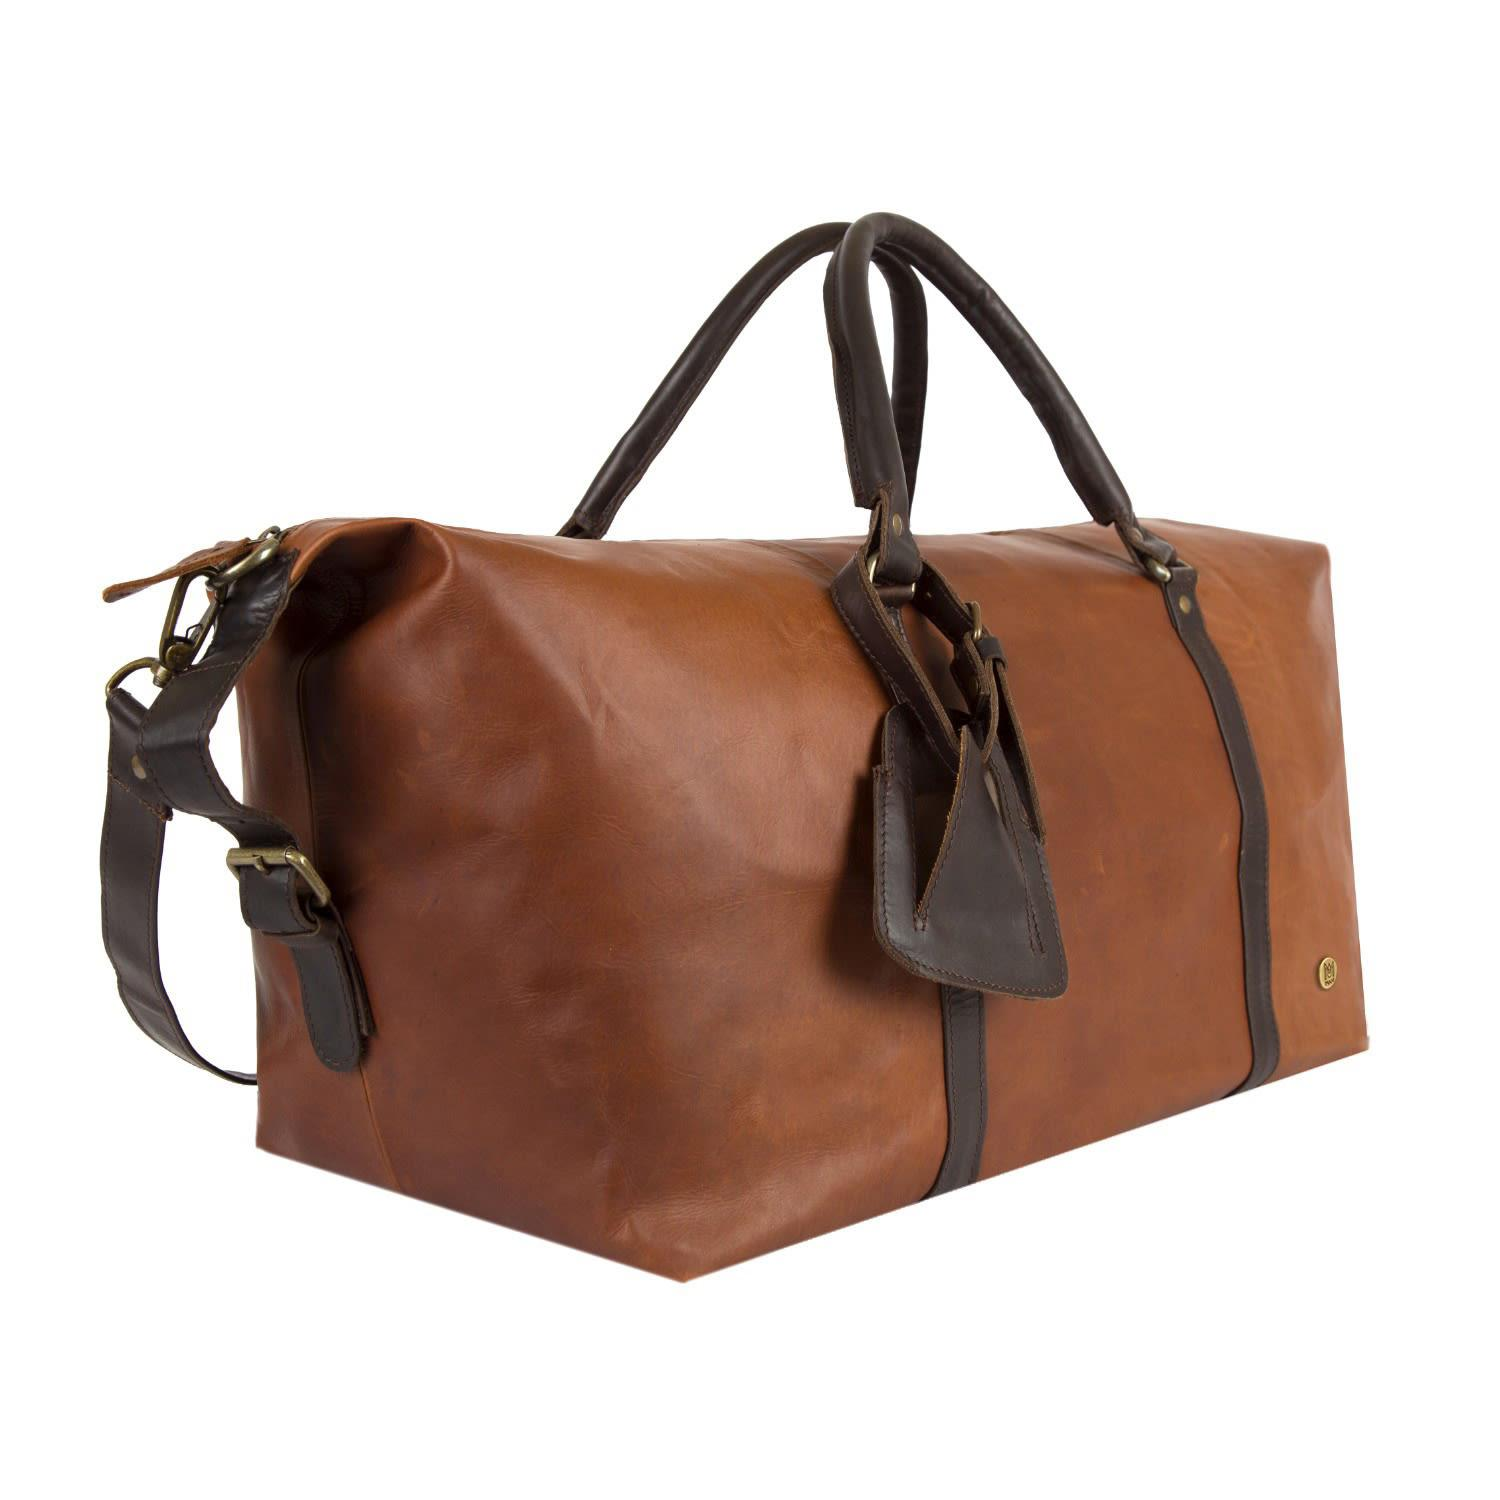 MAHI Leather - Leather Long Armada Duffle Large Weekend overnight Holdall  Bag In Vintage Brown. View fullscreen 9b7543afb1256